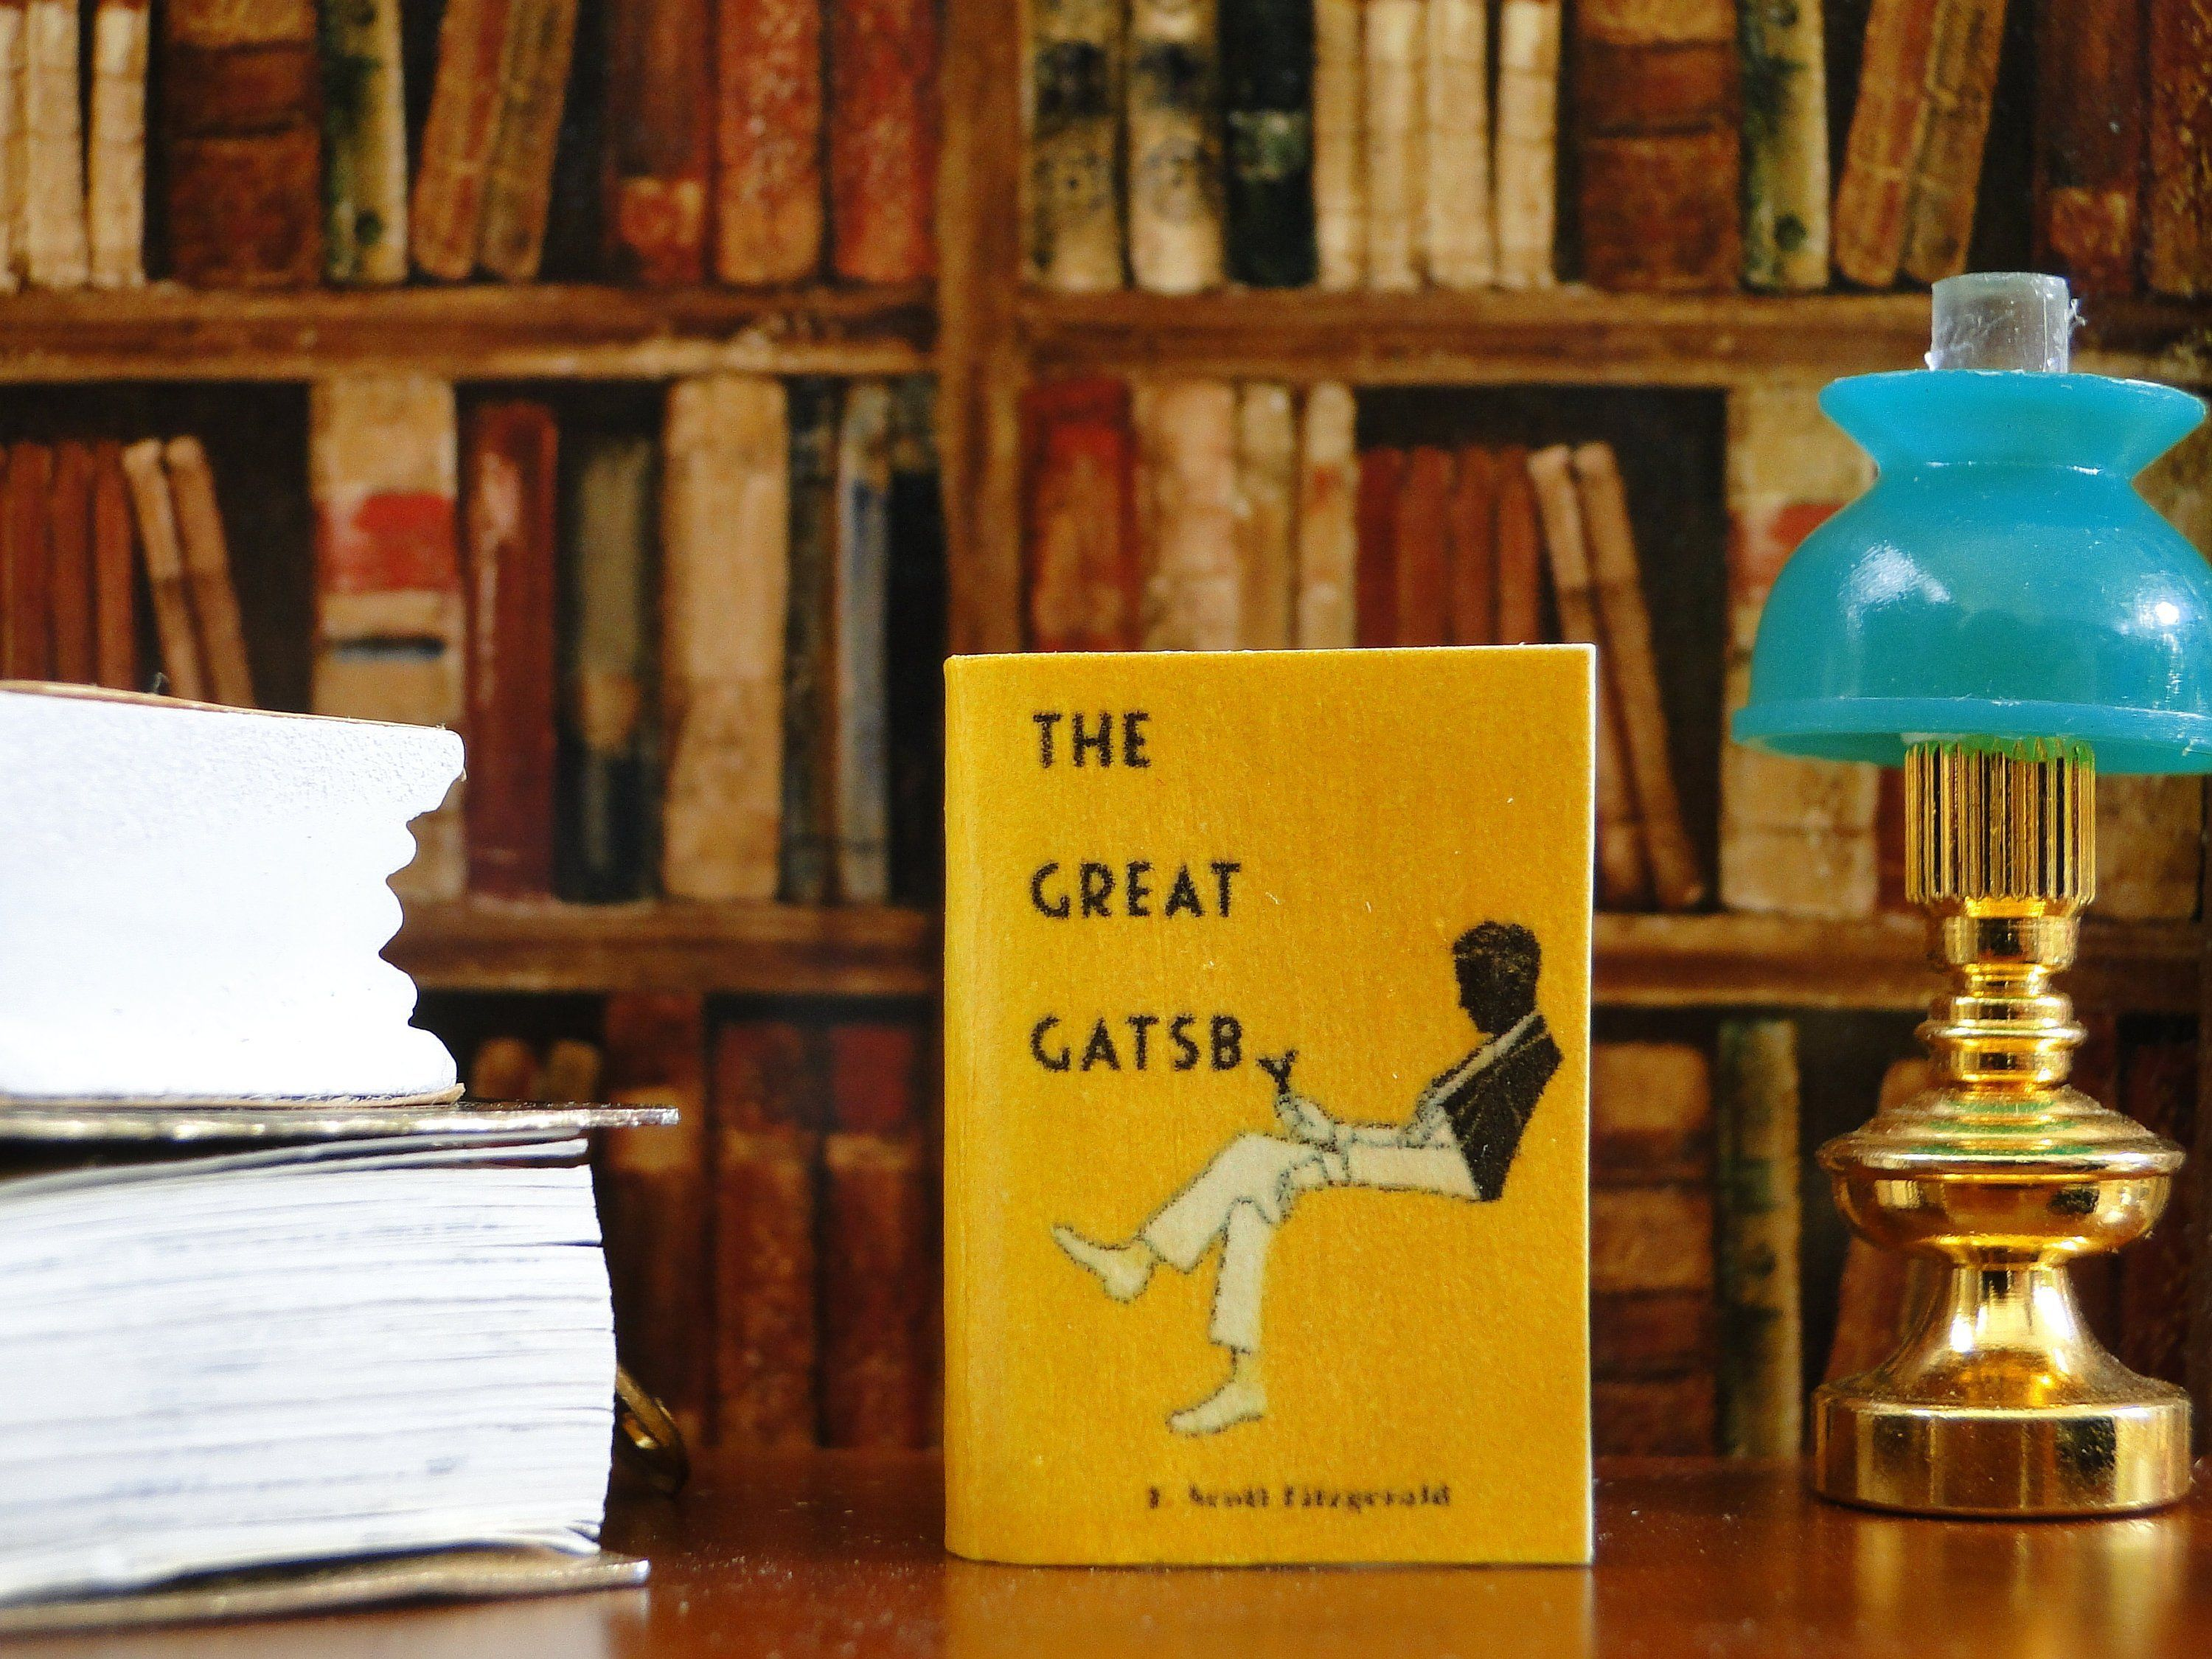 The Great Gatsby By F Scott Fitzgerald 1 12 Scale